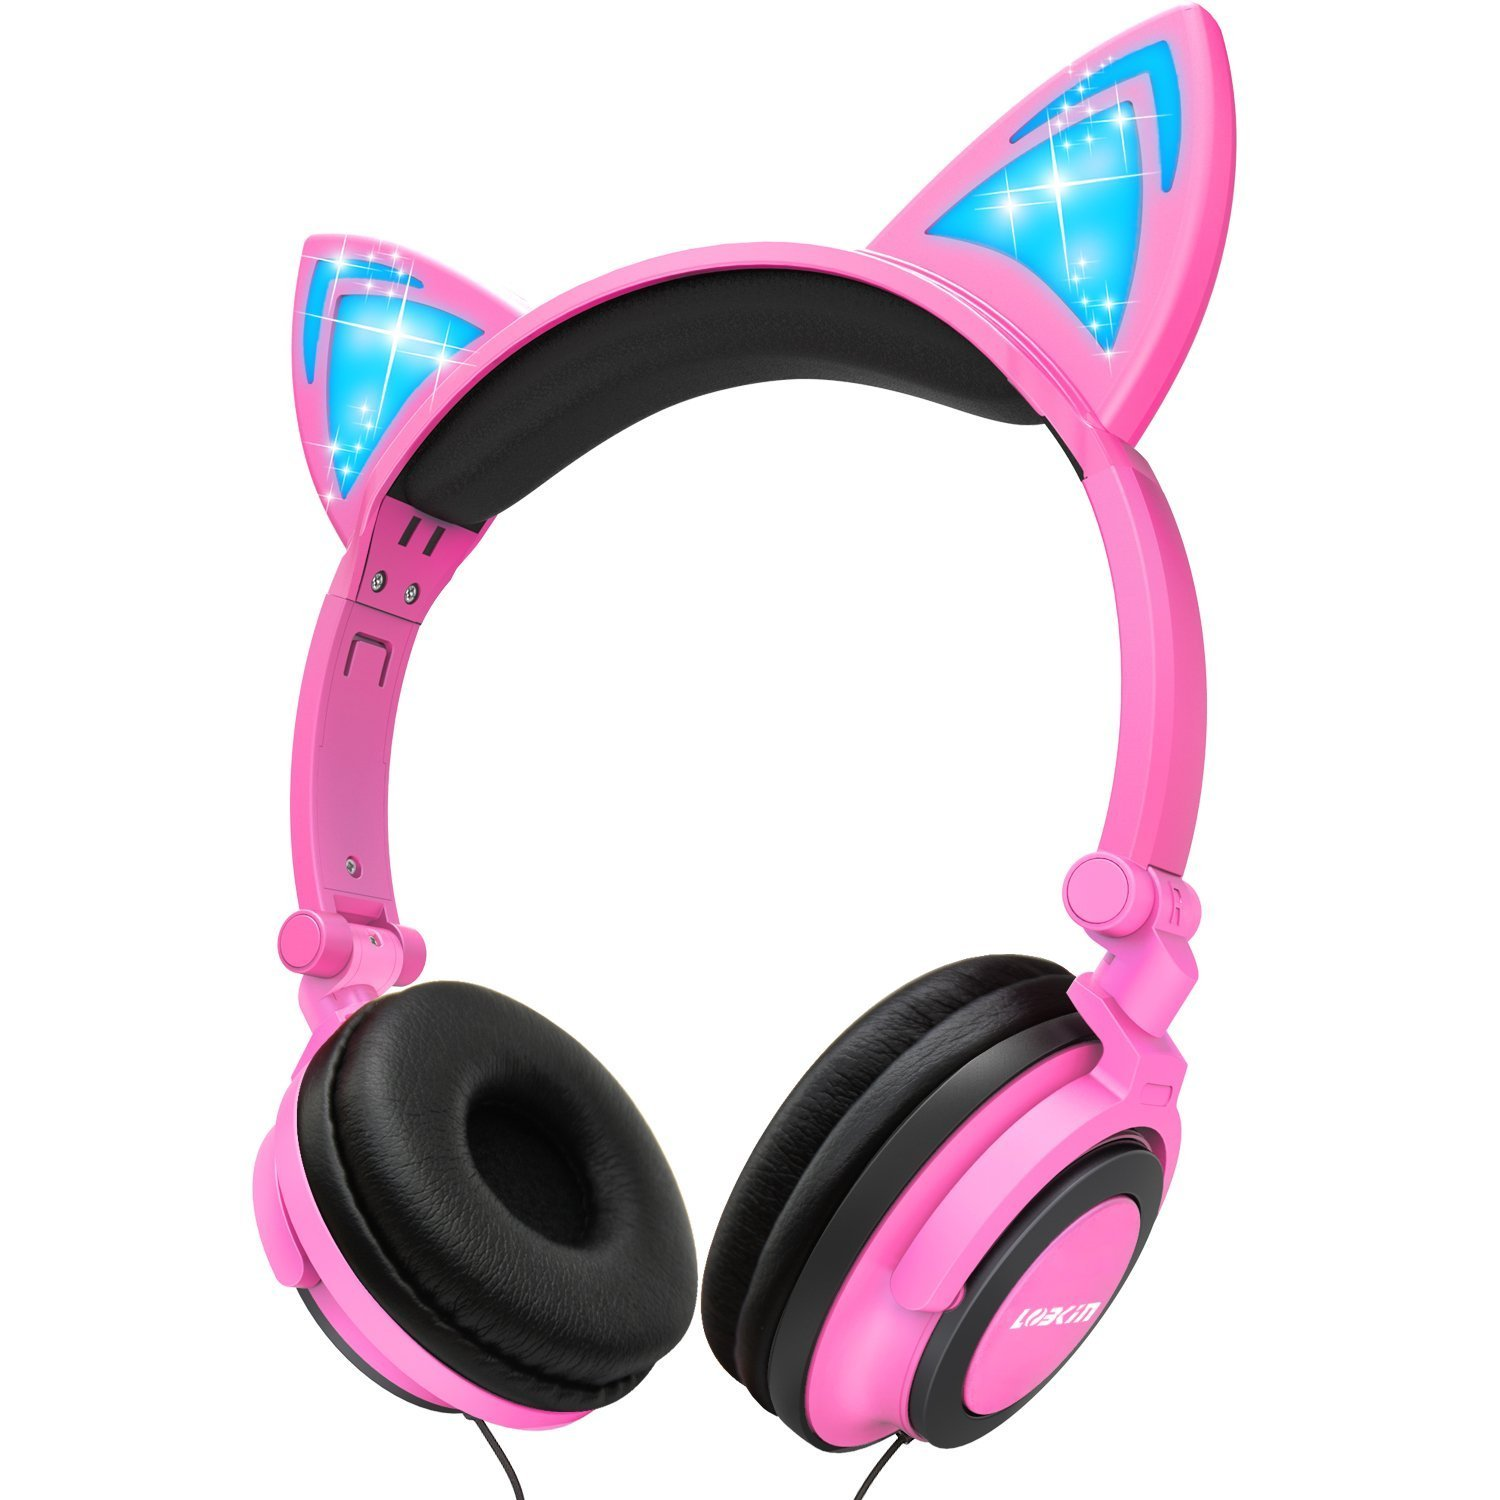 Kids Headphones with Cat Ear,Lobkin Wired Headphones On Ear for Children,Girls ,Adult,Foldable Headphone with Glowing Light,Compatible with phone,Samsung, Kindle Fire, iPad Tablets and more(PINK)